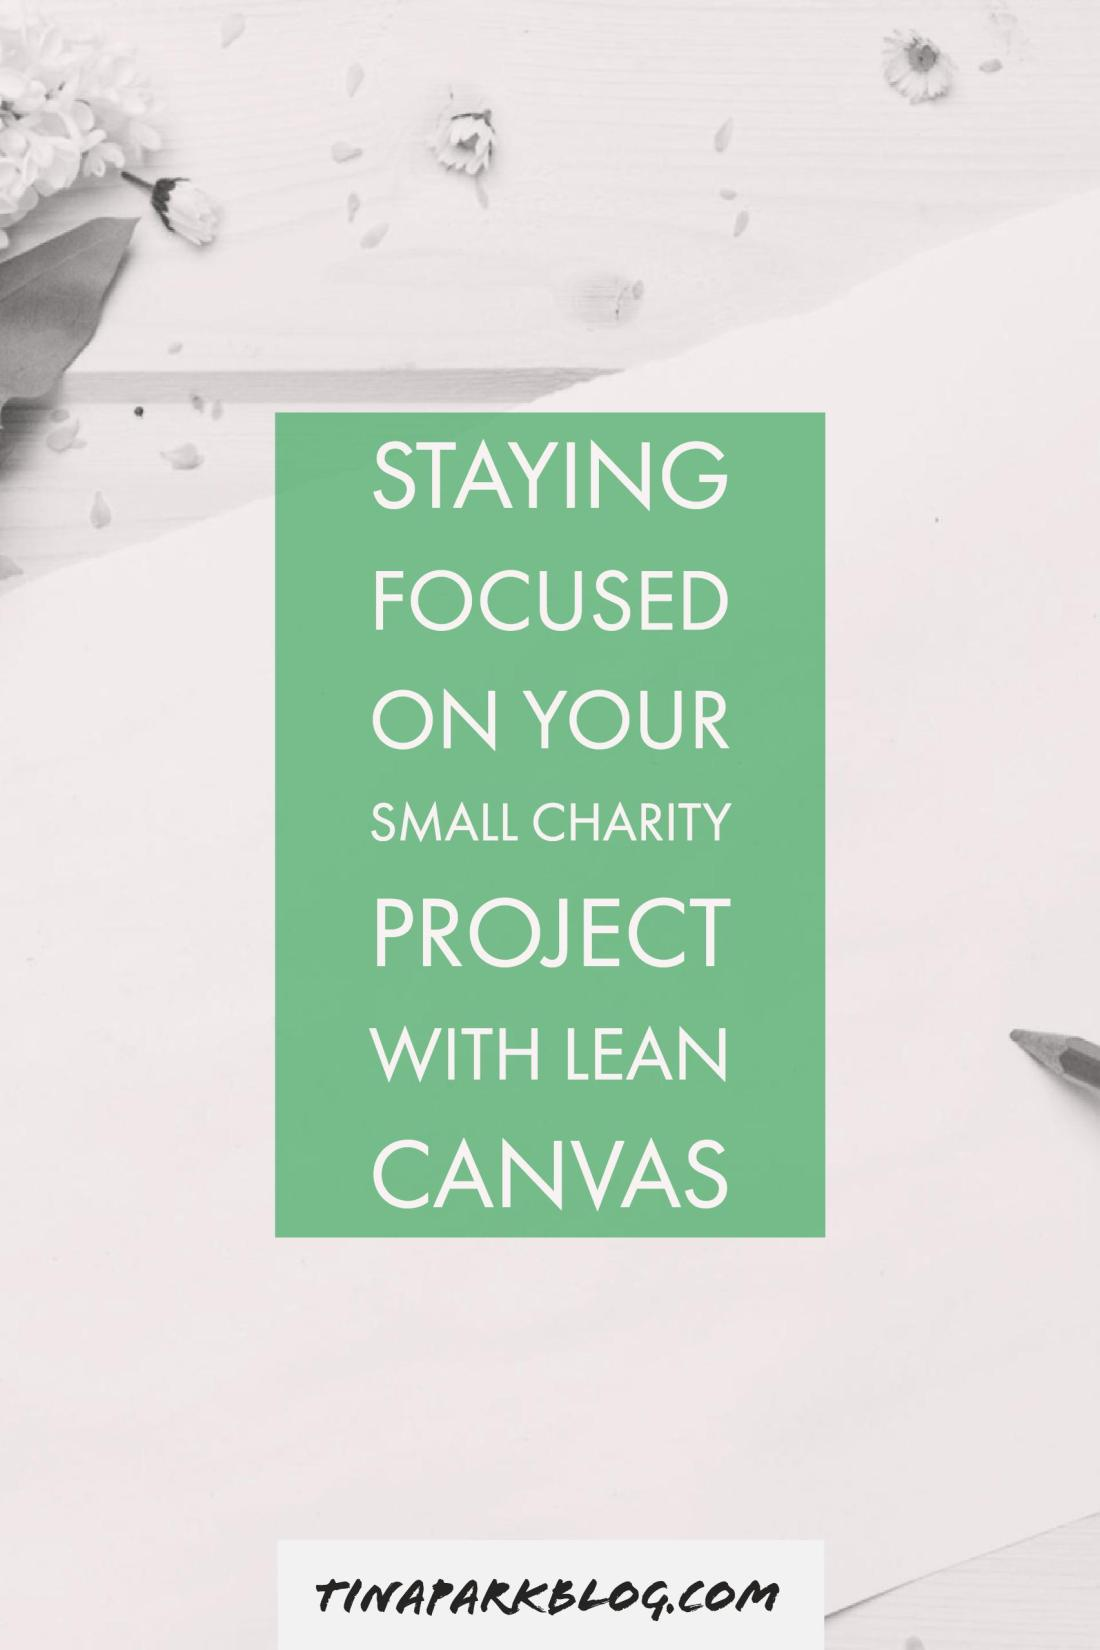 Staying Focused on Your Small Charity Project with LeanCanvas